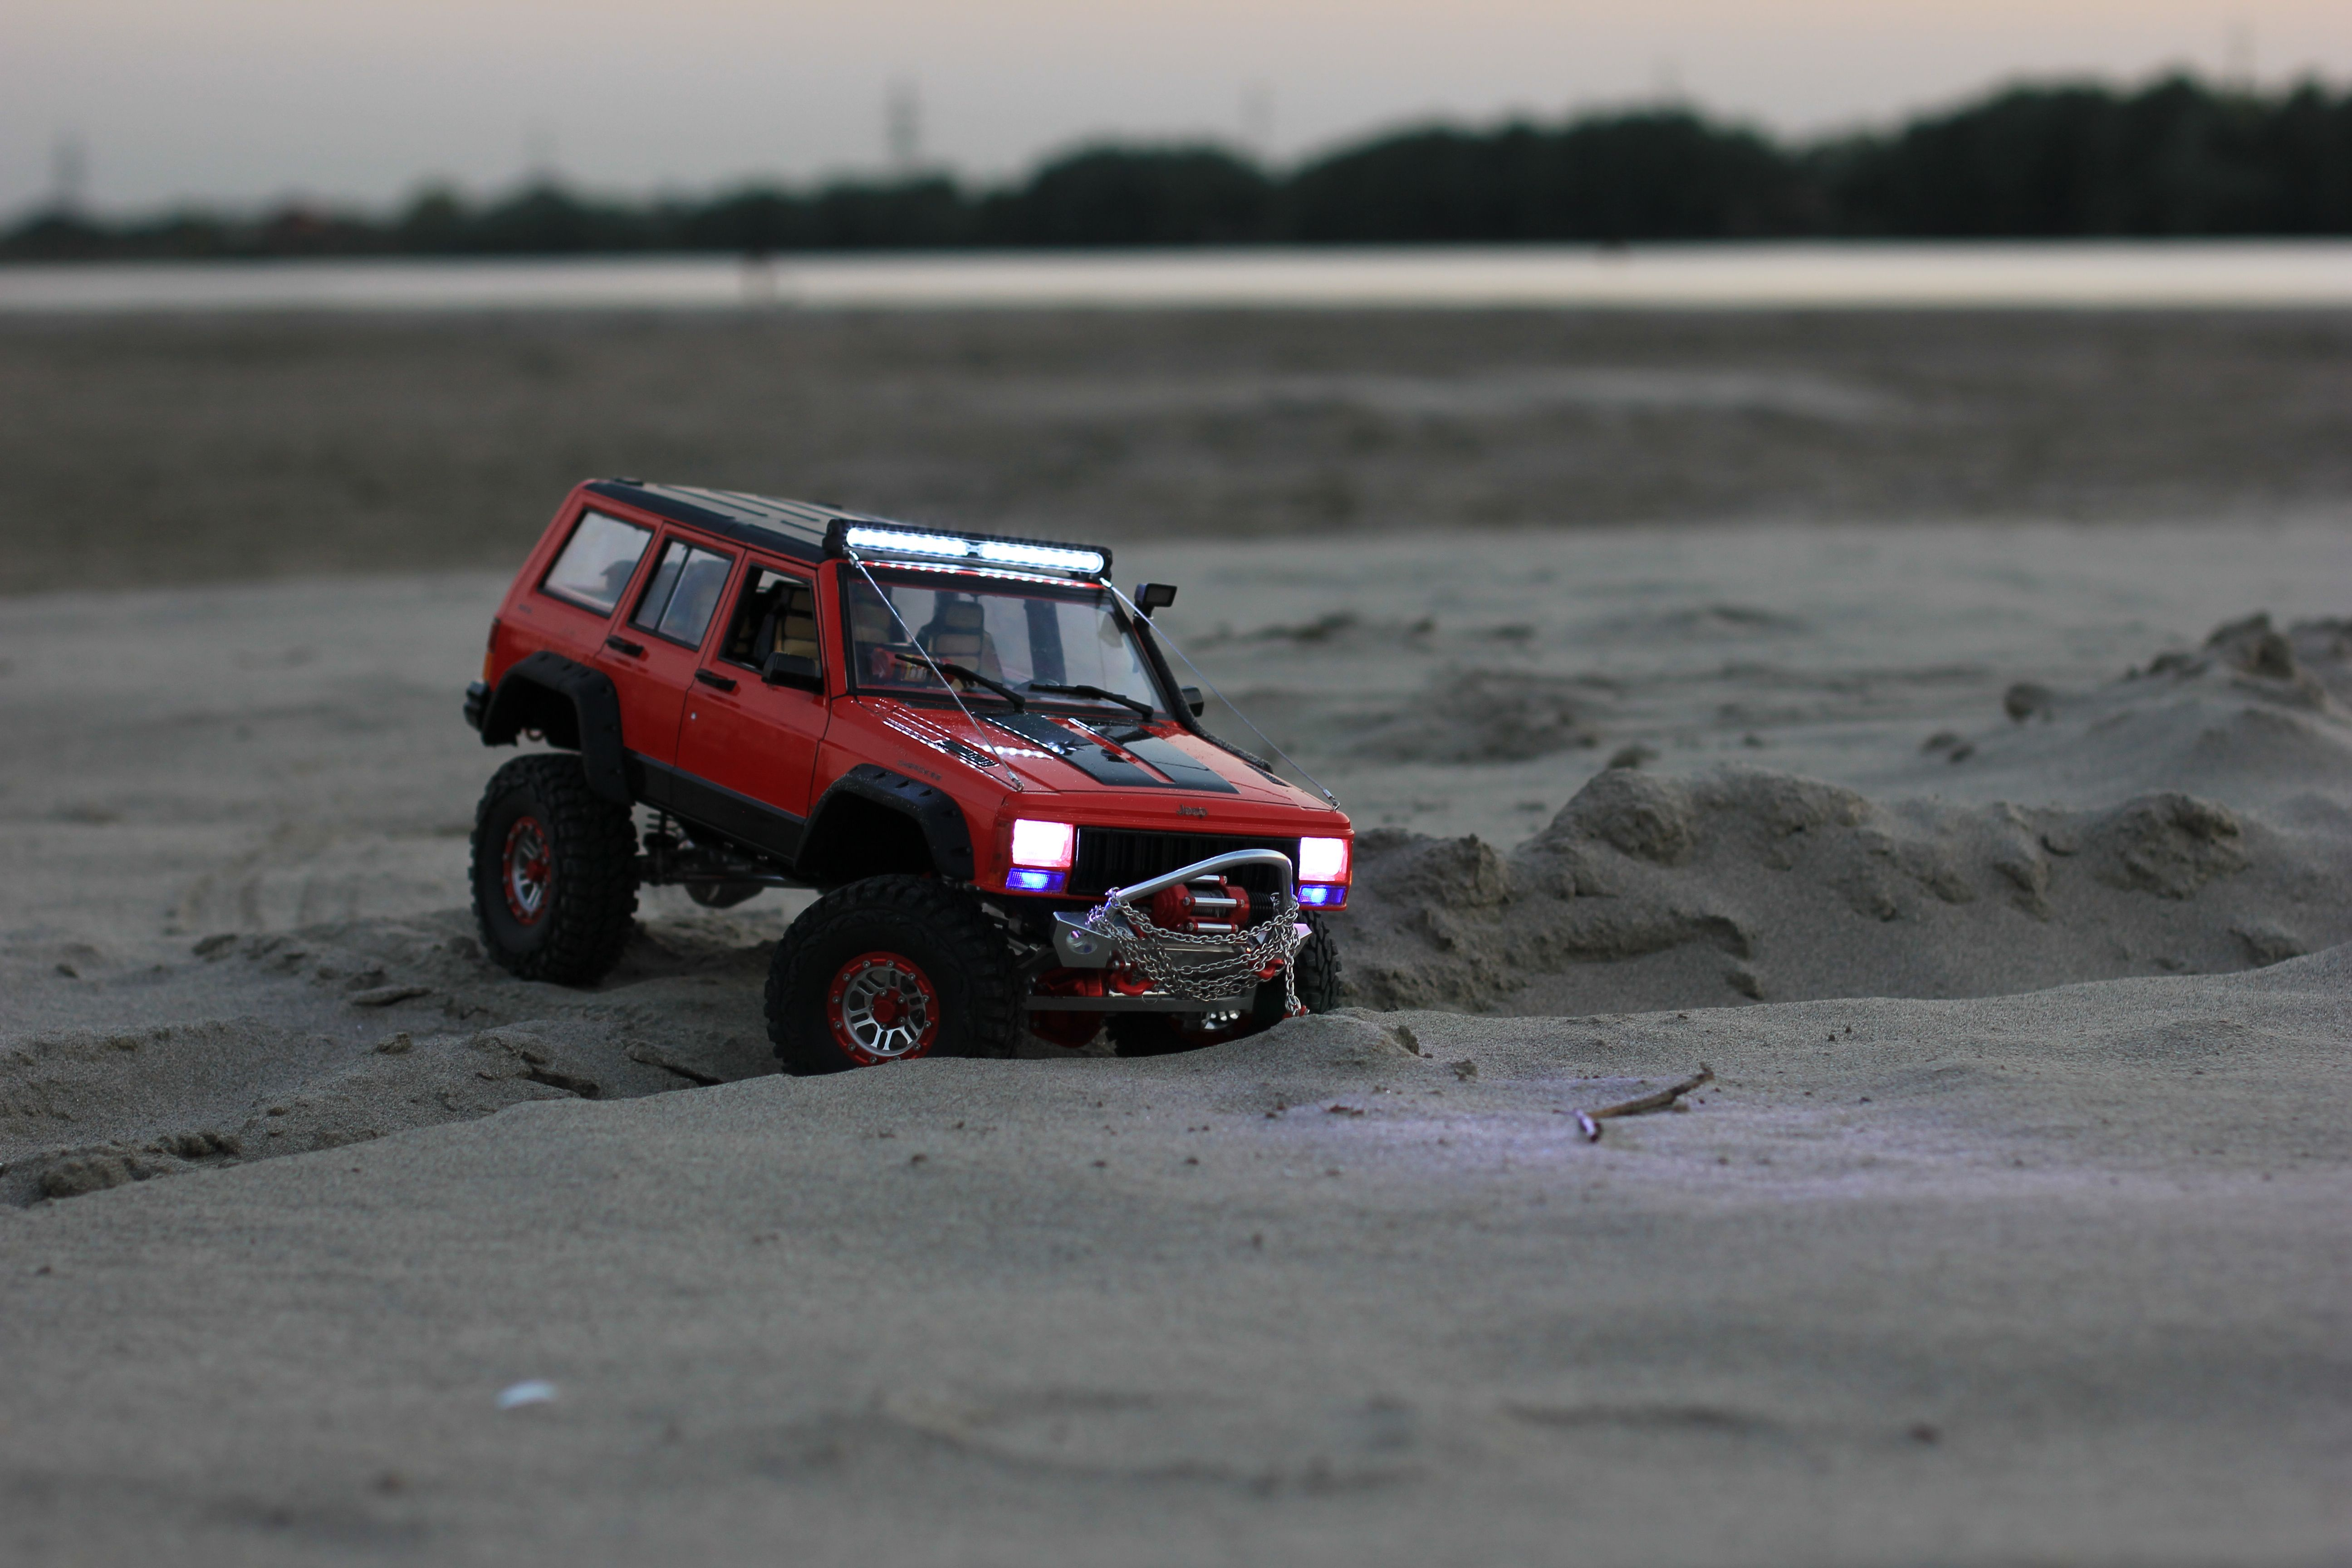 Pin by Aideneugenebug on rc cars Rc crawler, Rc cars, 4x4